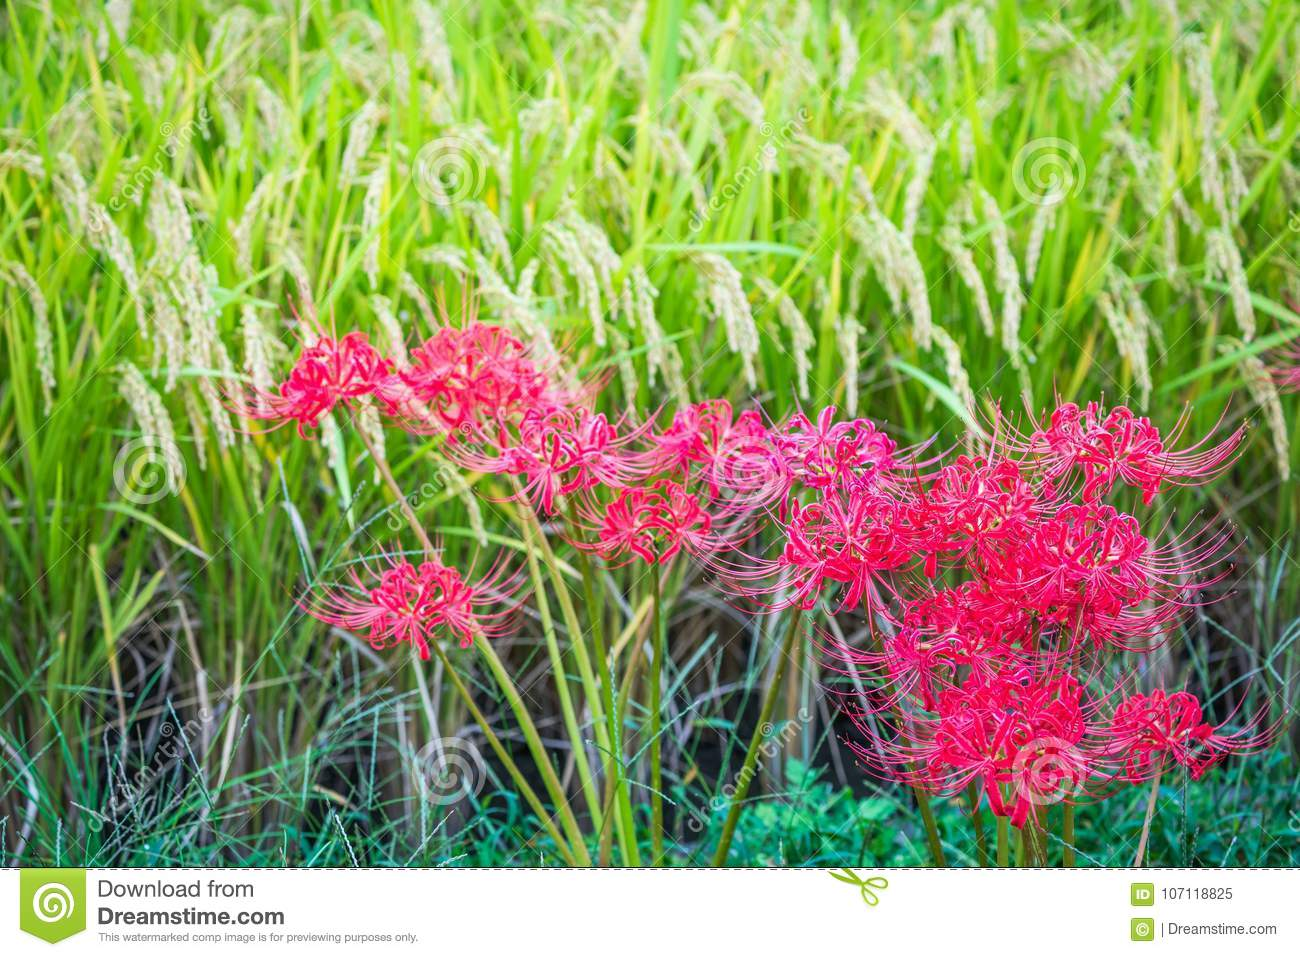 Red and green of japans rice harvest stock image image of red spider lilies commonly flower in september along rice fields of japan at harvest time these beautiful but poisonous equinox flowers deter pests and izmirmasajfo